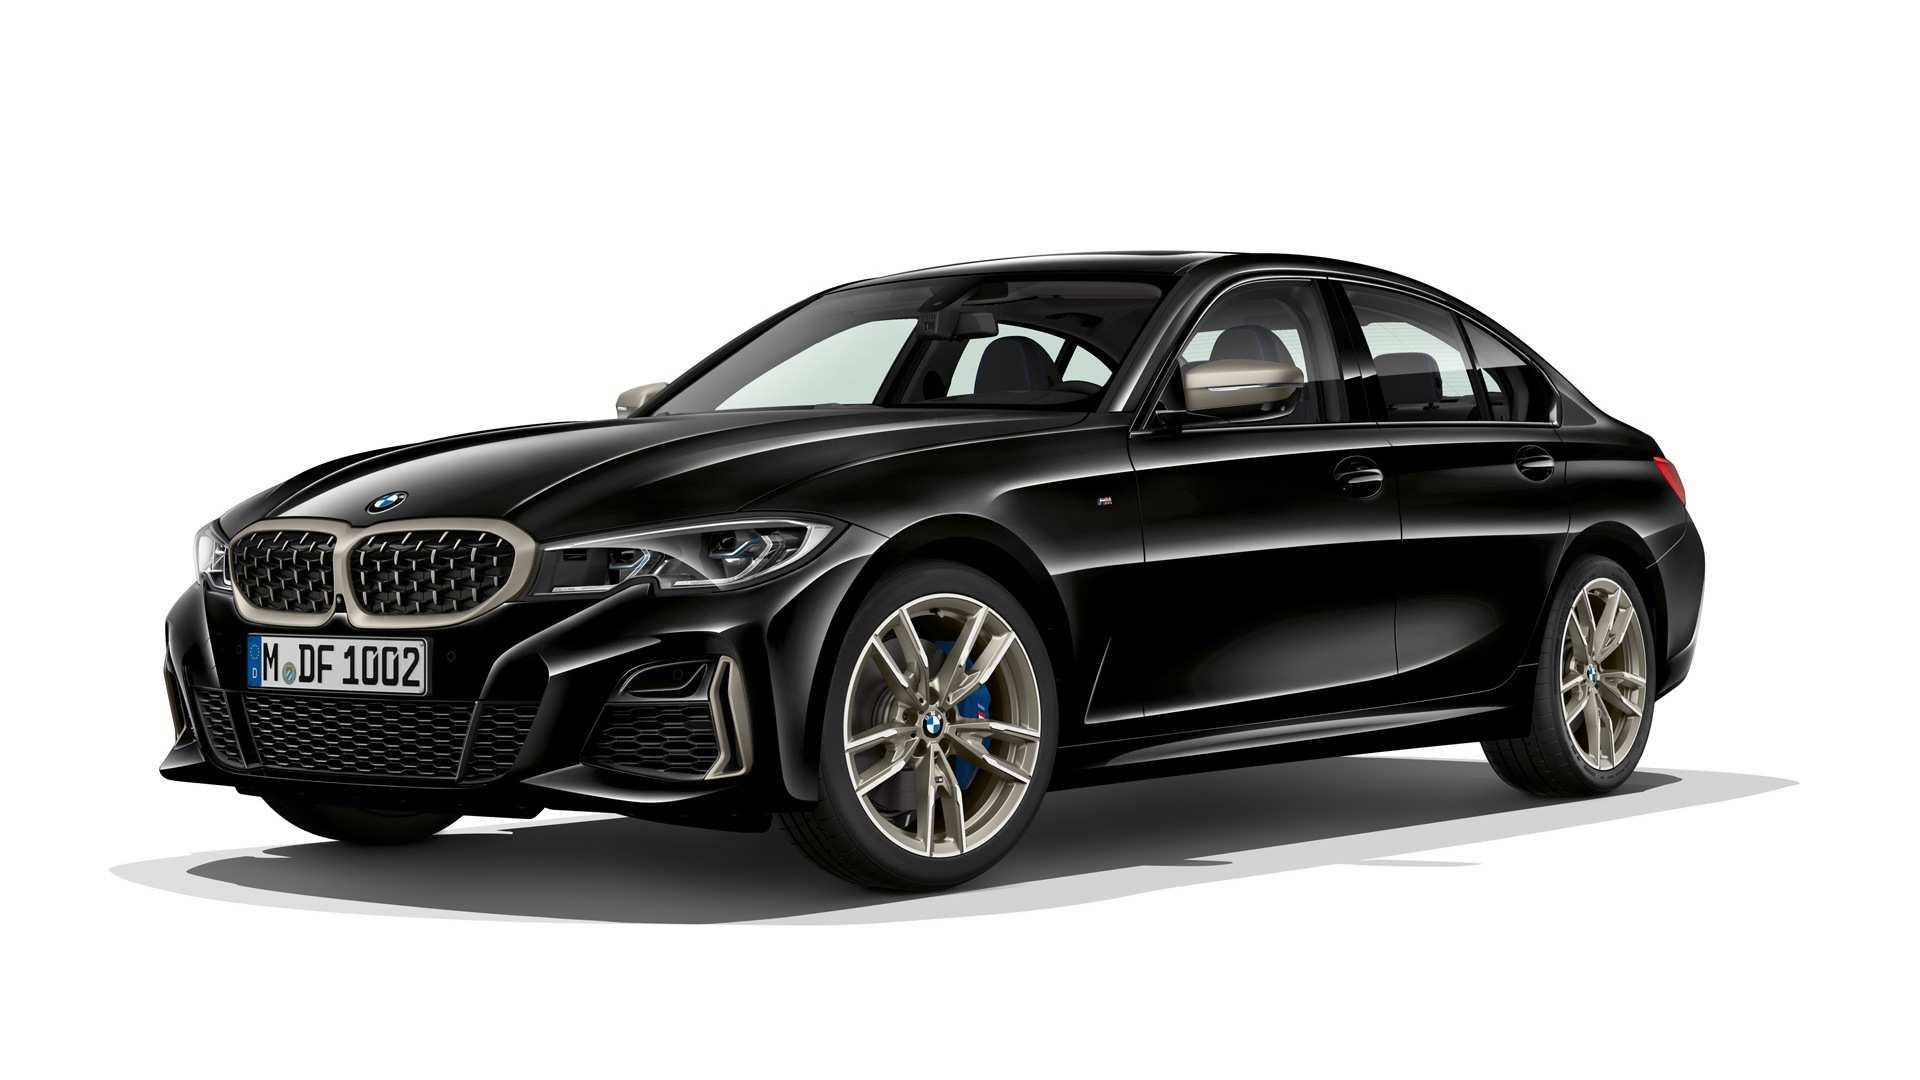 82 Concept of 2020 Bmw 340I Configurations by 2020 Bmw 340I